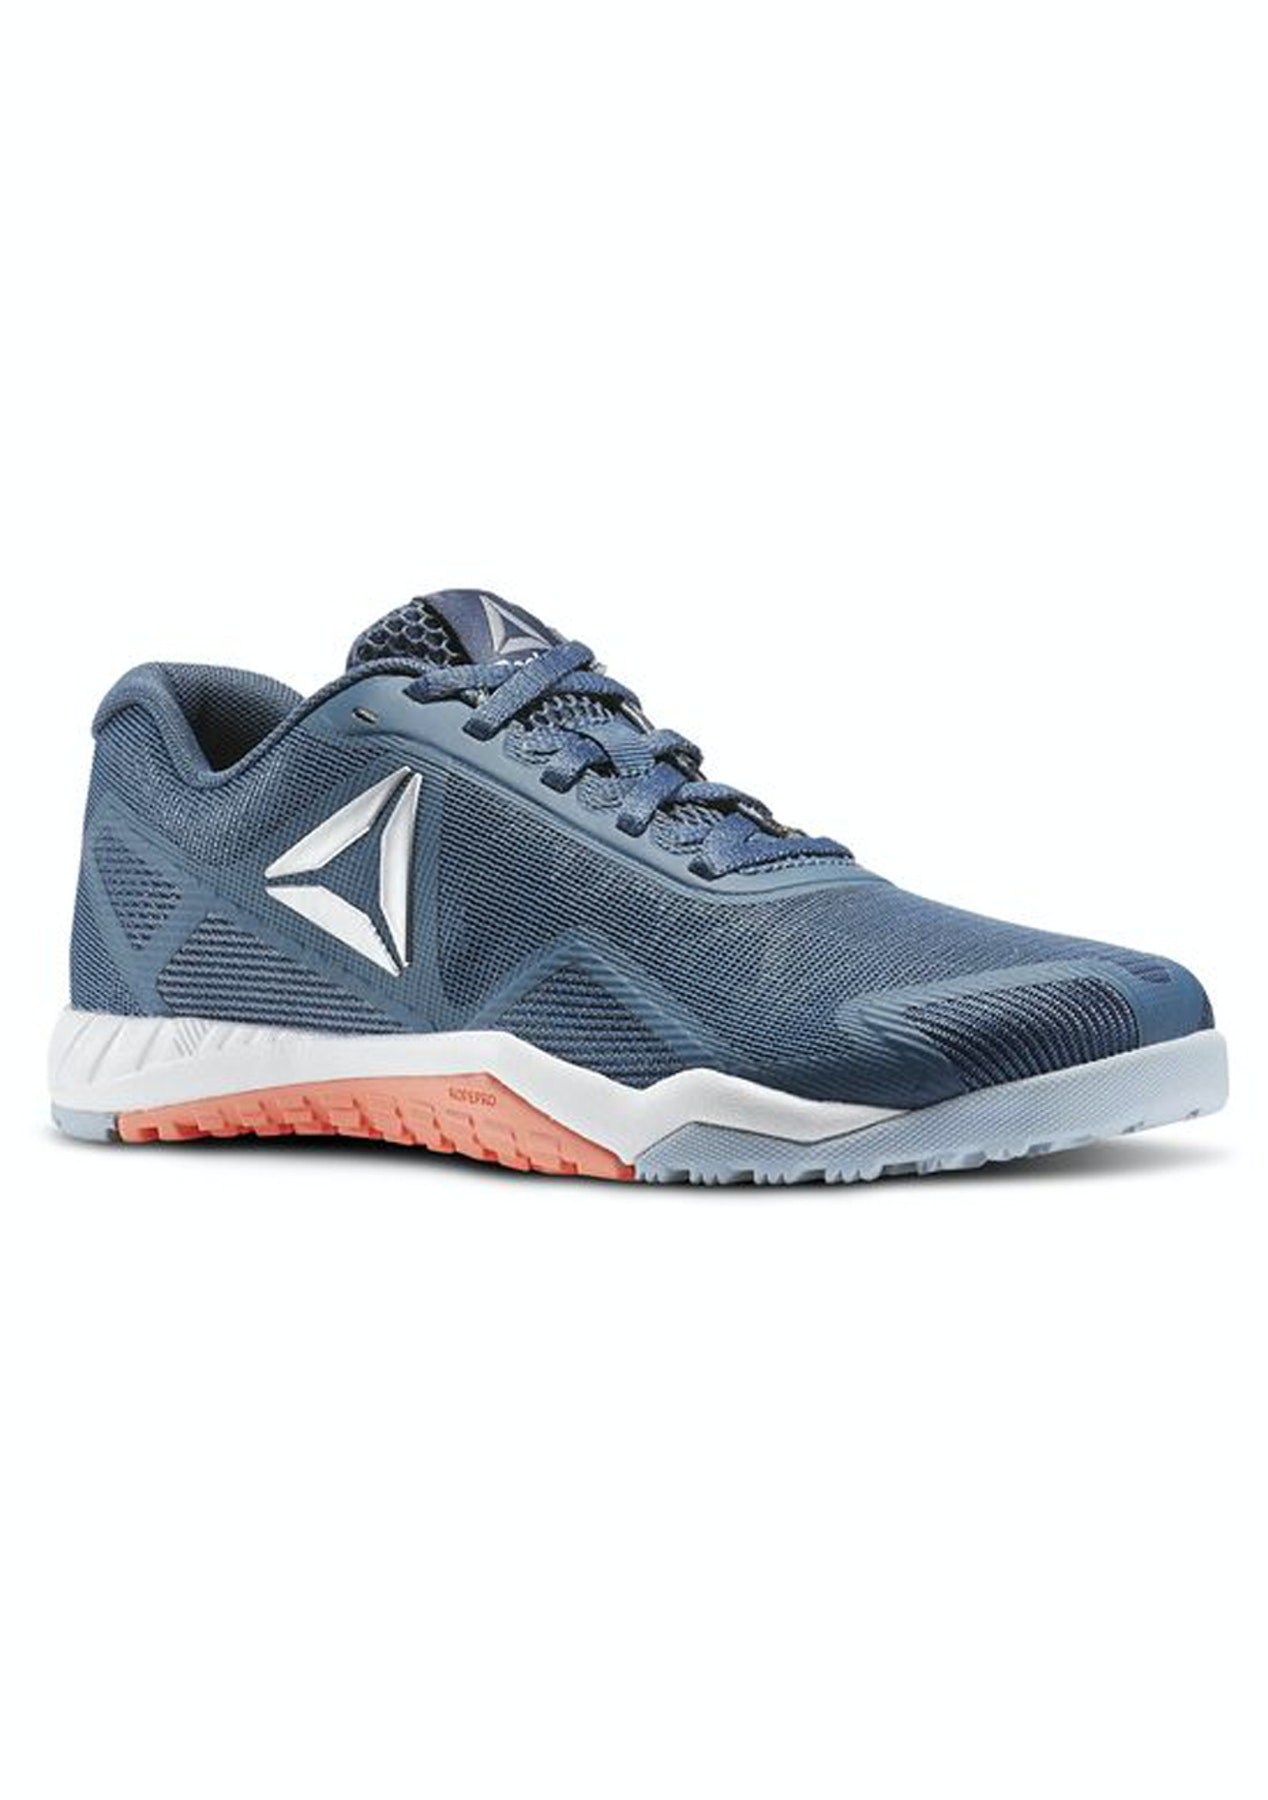 b874d9cfea856 Reebok Womens - Ros Workout Tr 2.0 - Brave Blue Gable Grey Stellar  Pink Pure Silver - Big Brand Womens Shoes - Onceit